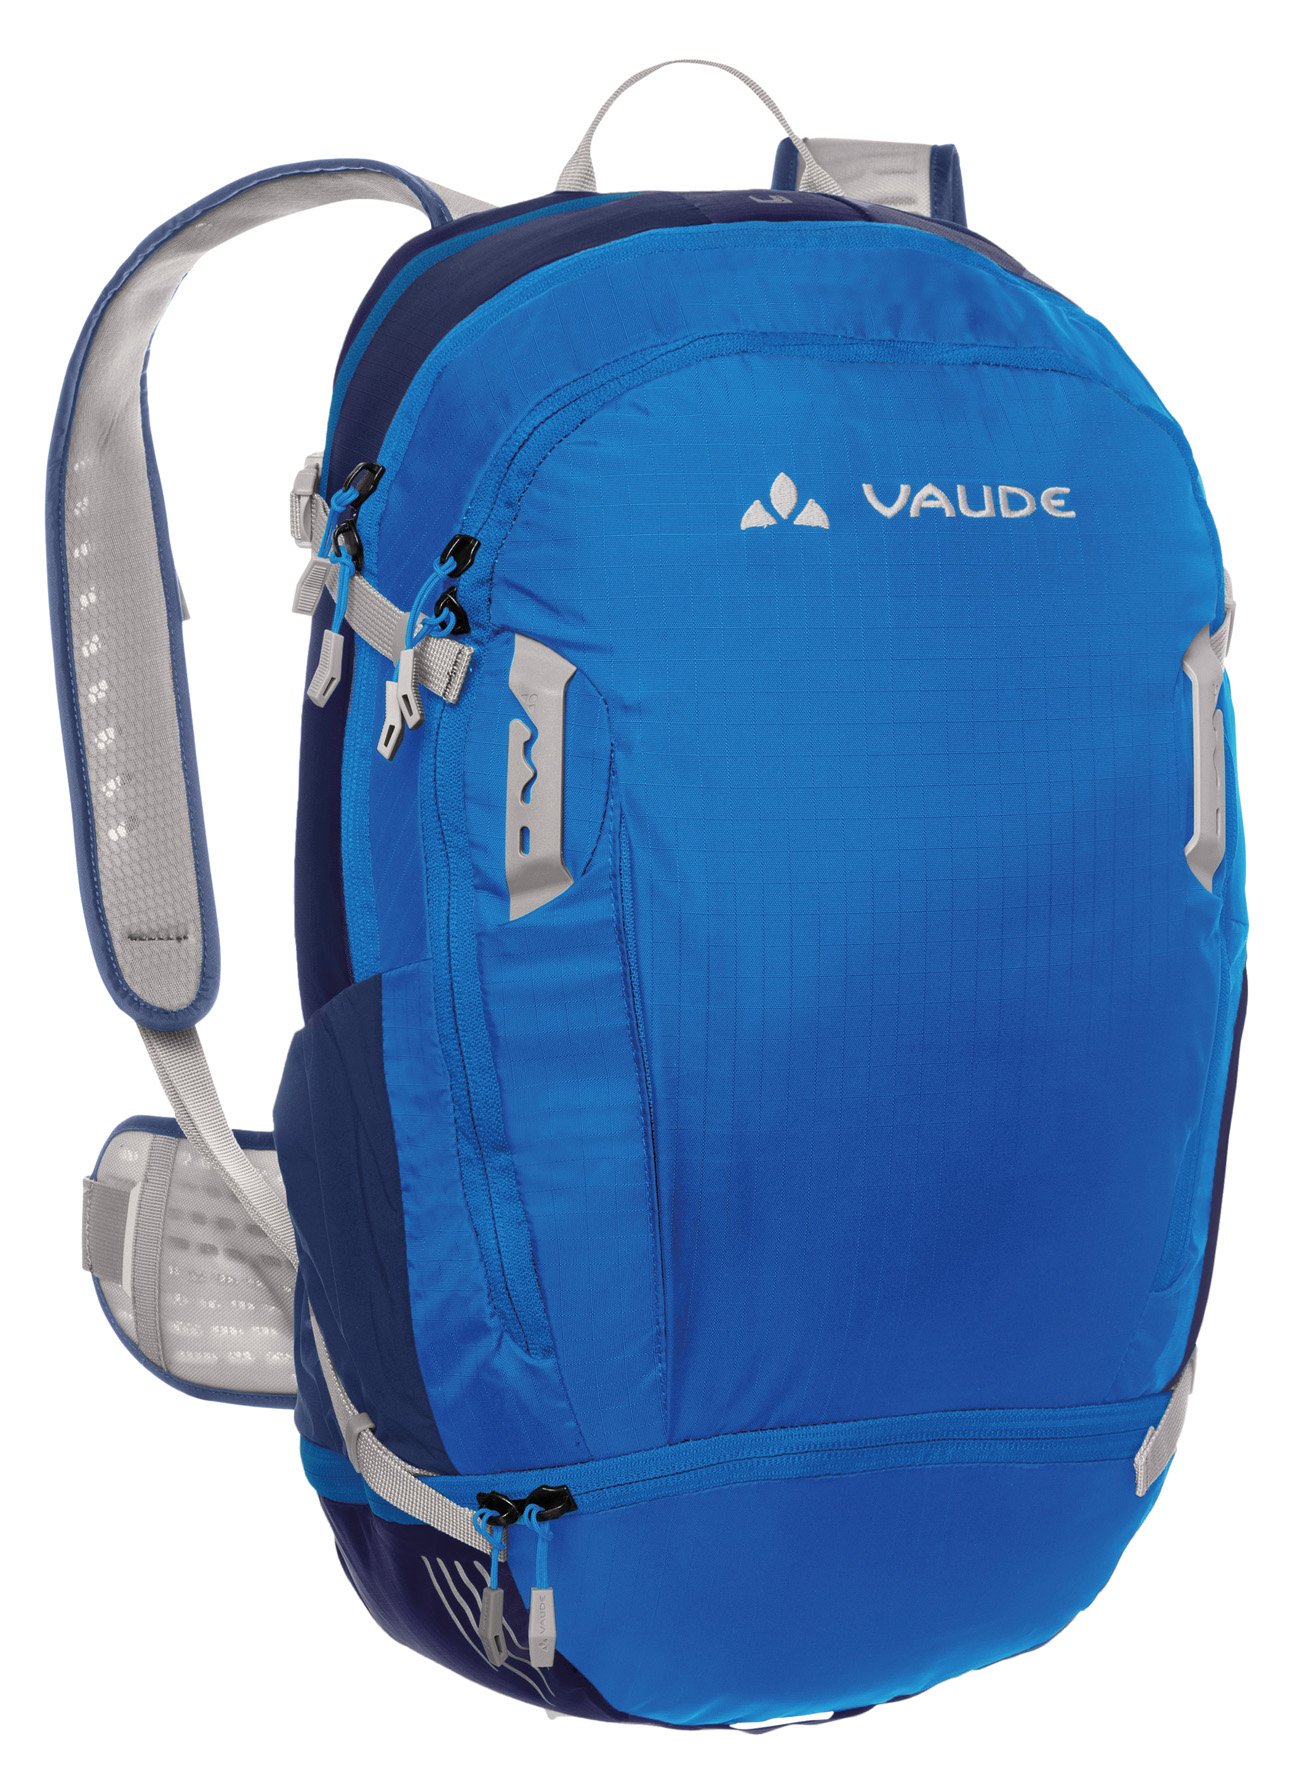 VAUDE Bike Alpin 25+5 hydro blue  - schneider-sports